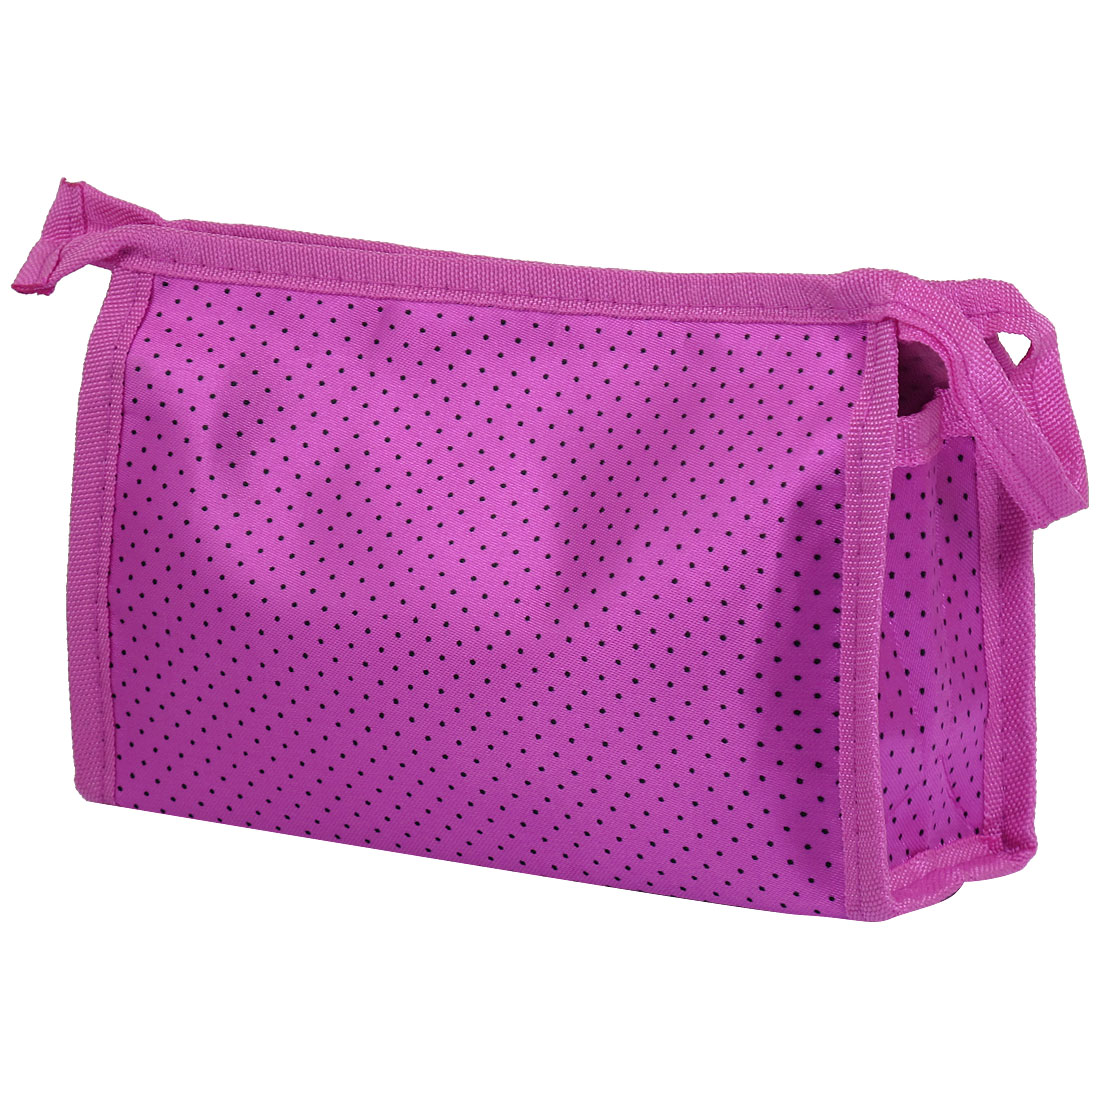 Zipper Closure Makeup Case Cosmetic Bag Fuchsia Black for Women Lady